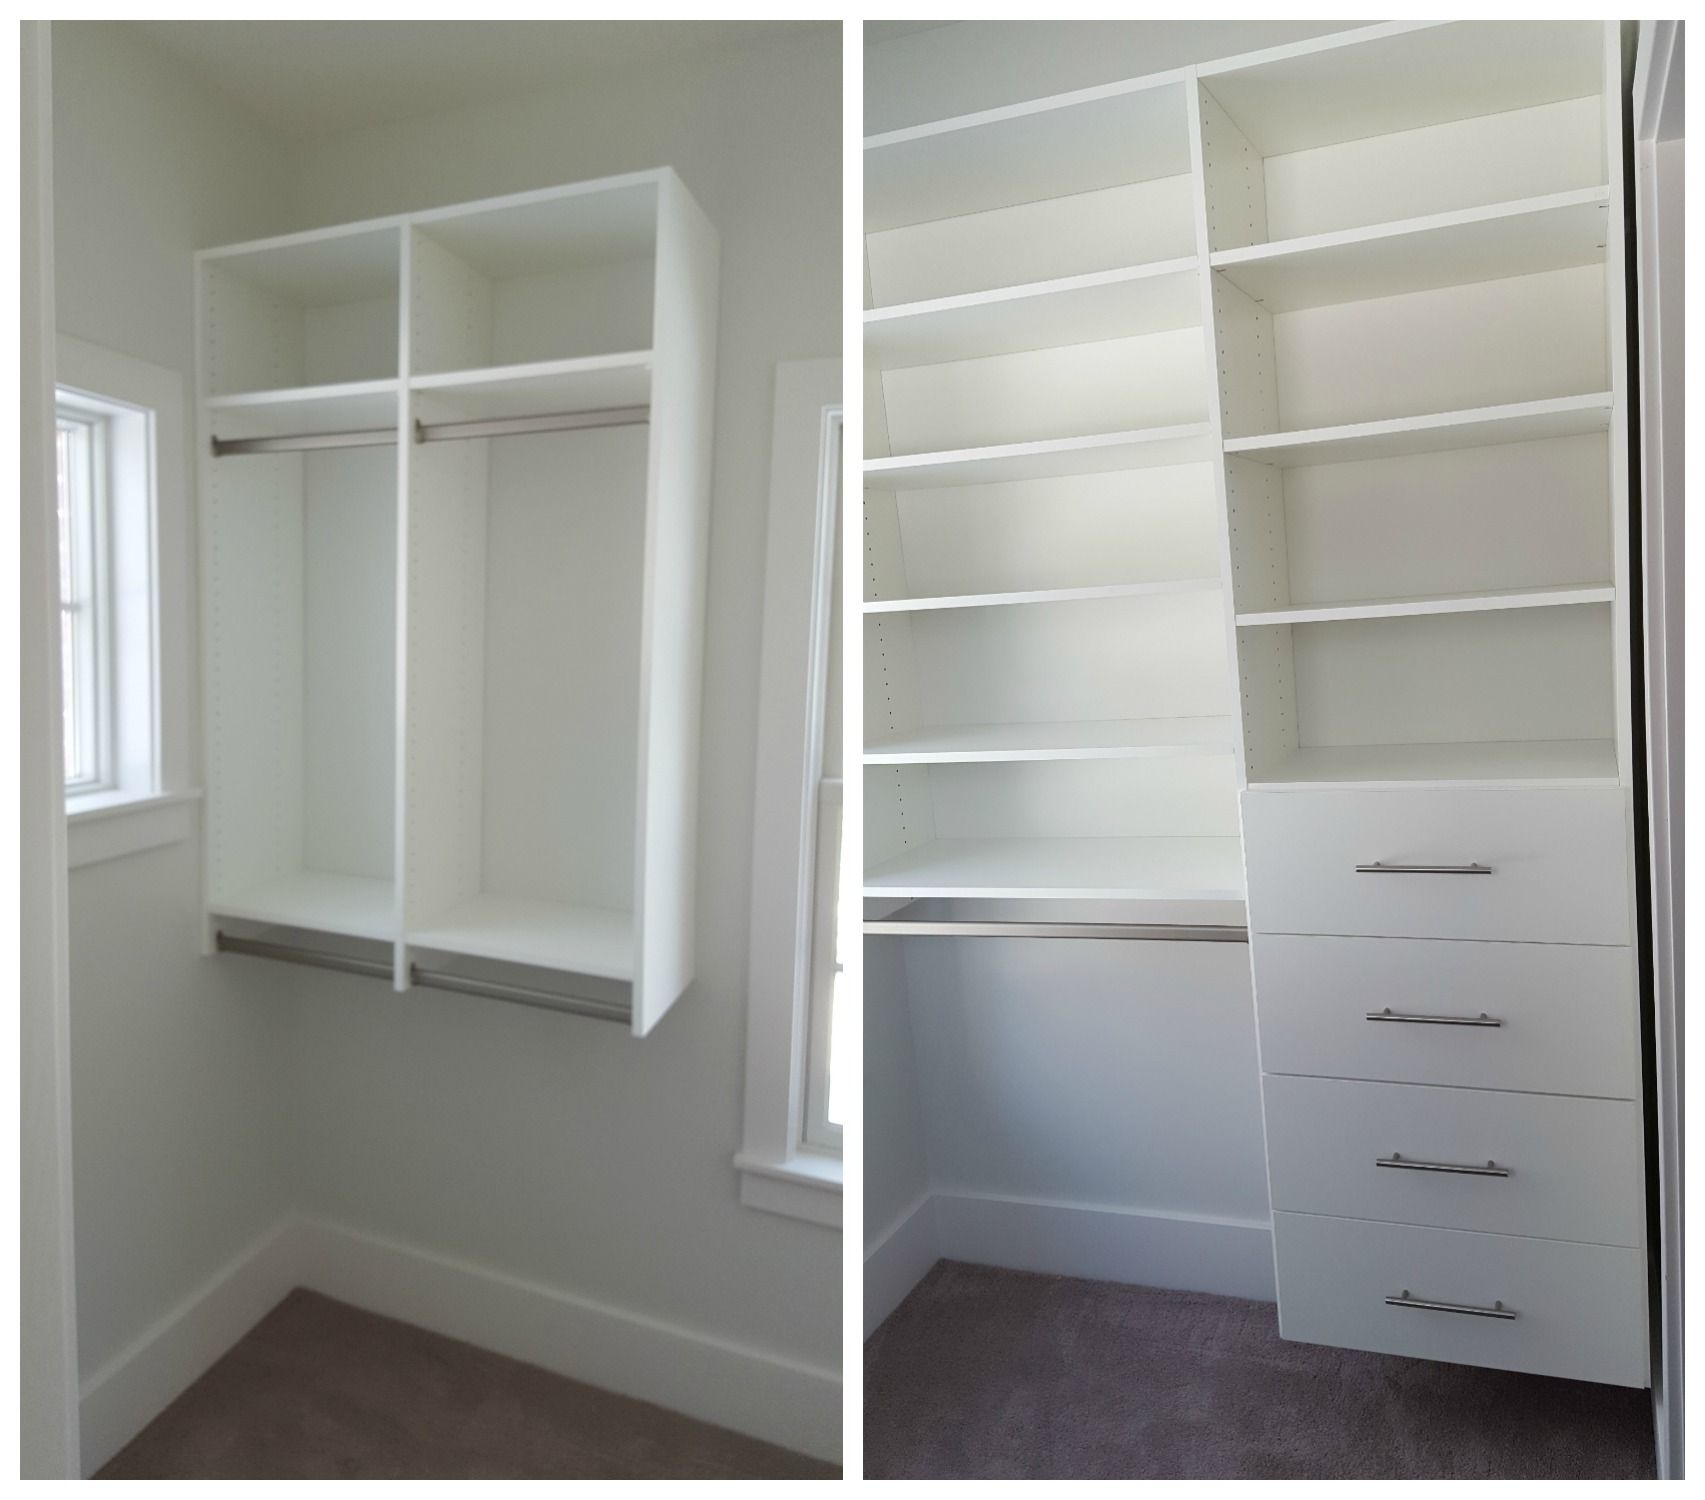 Meridian closets meridianclosets on pinterest